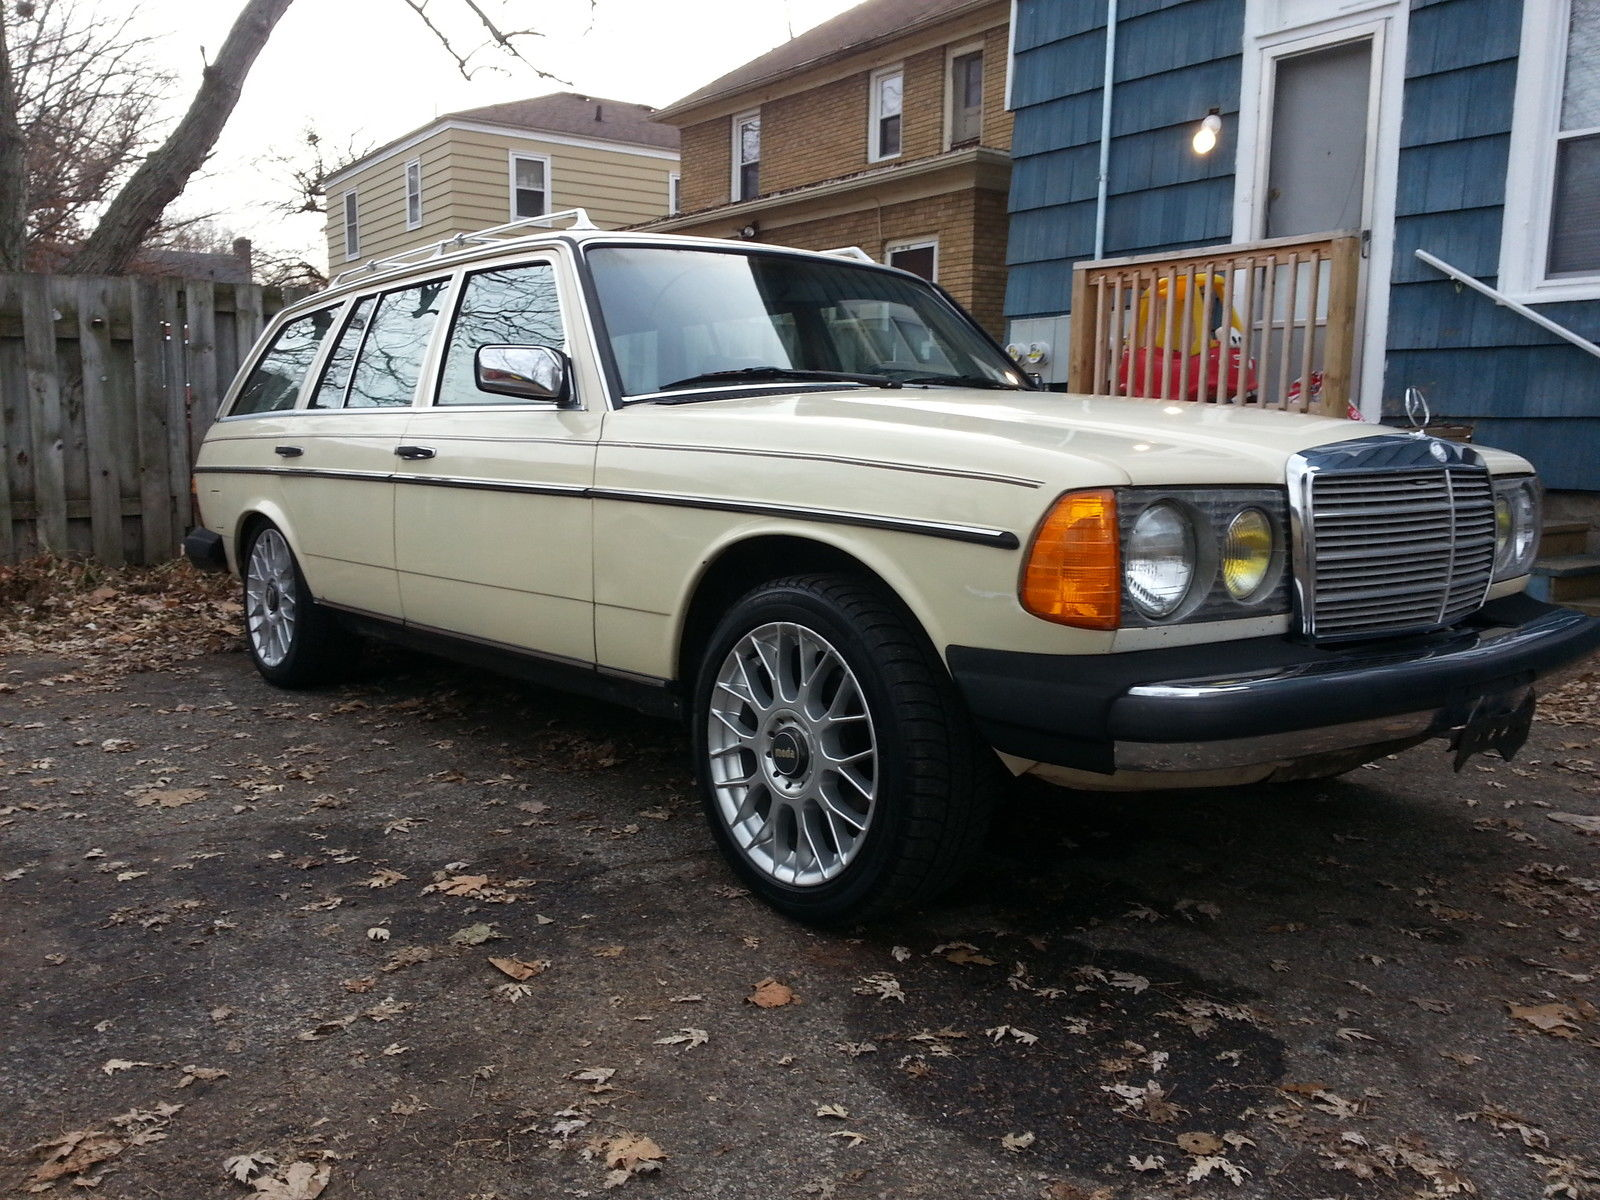 1983 mercedes benz w123 300td turbo diesel wagon